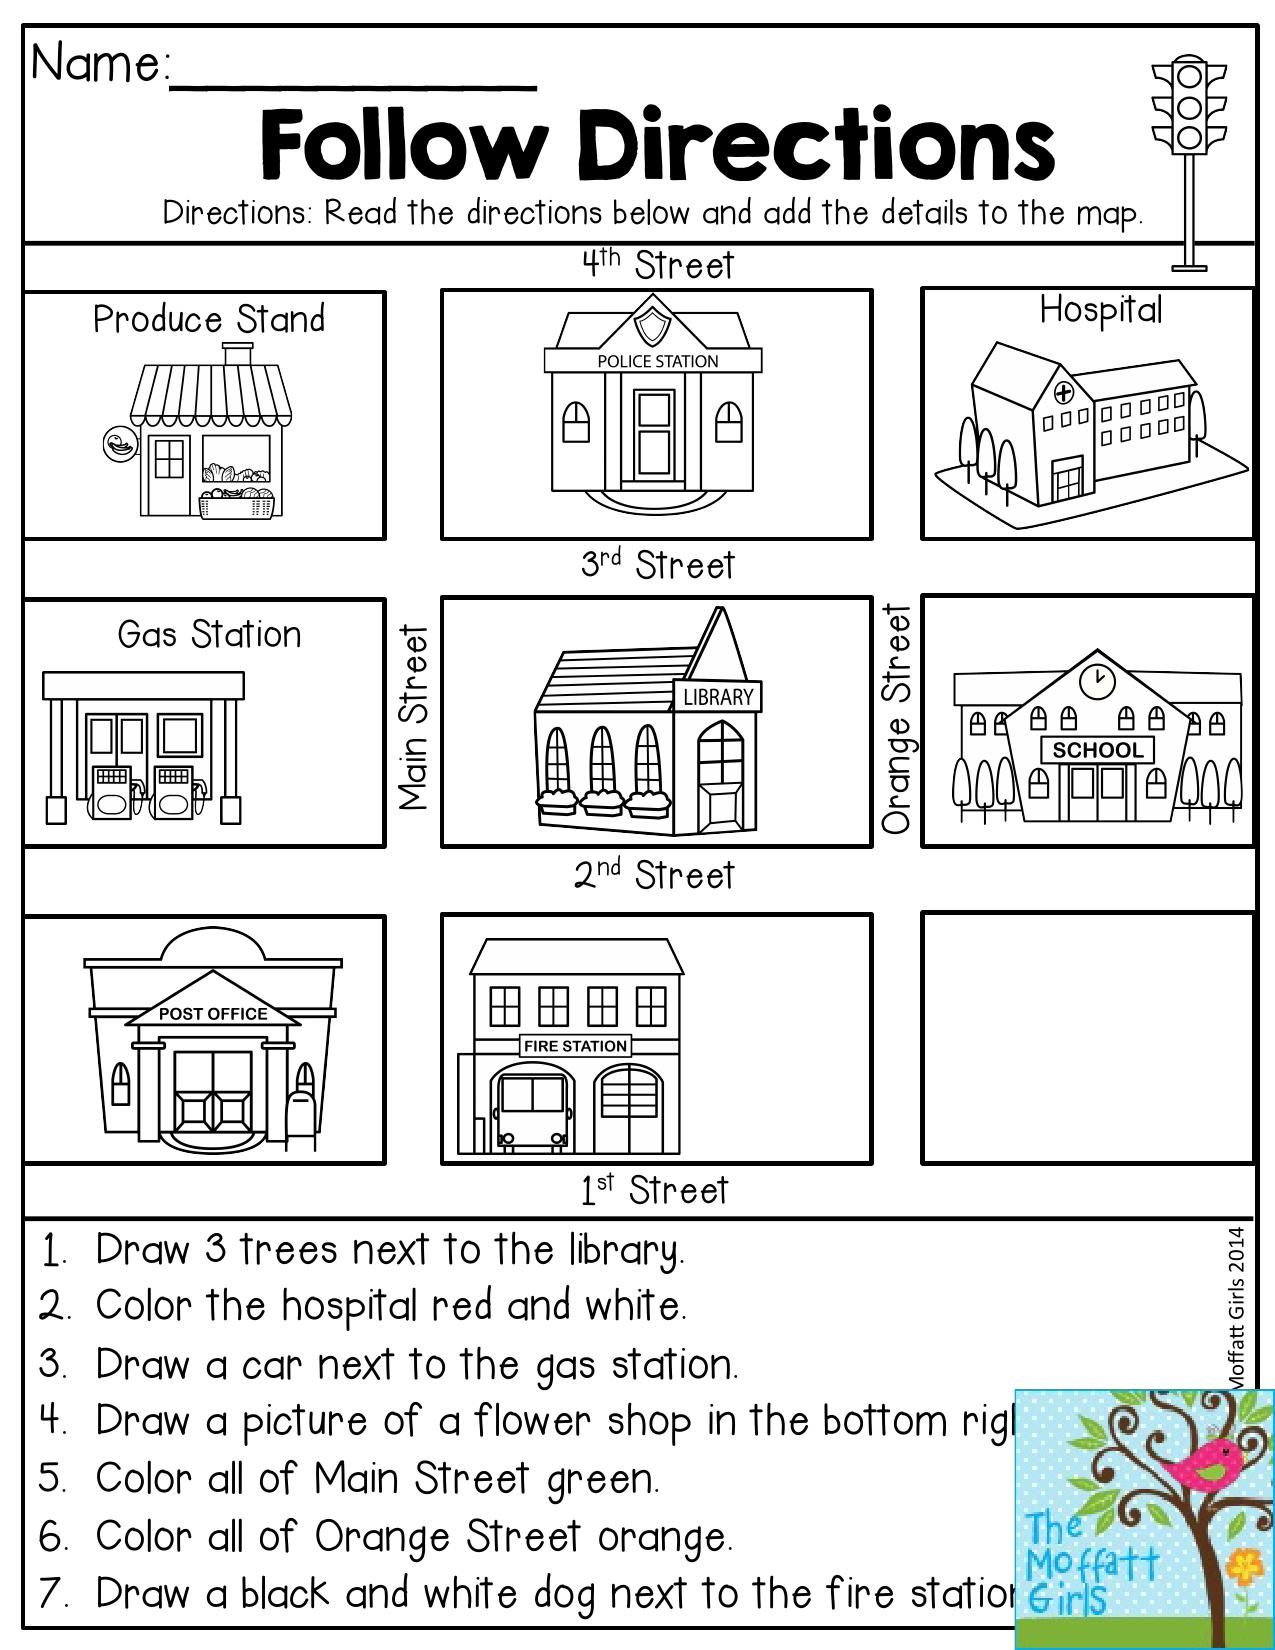 Follow Directions Read The Directions And Add The Details To The Map Fun Activity To Get